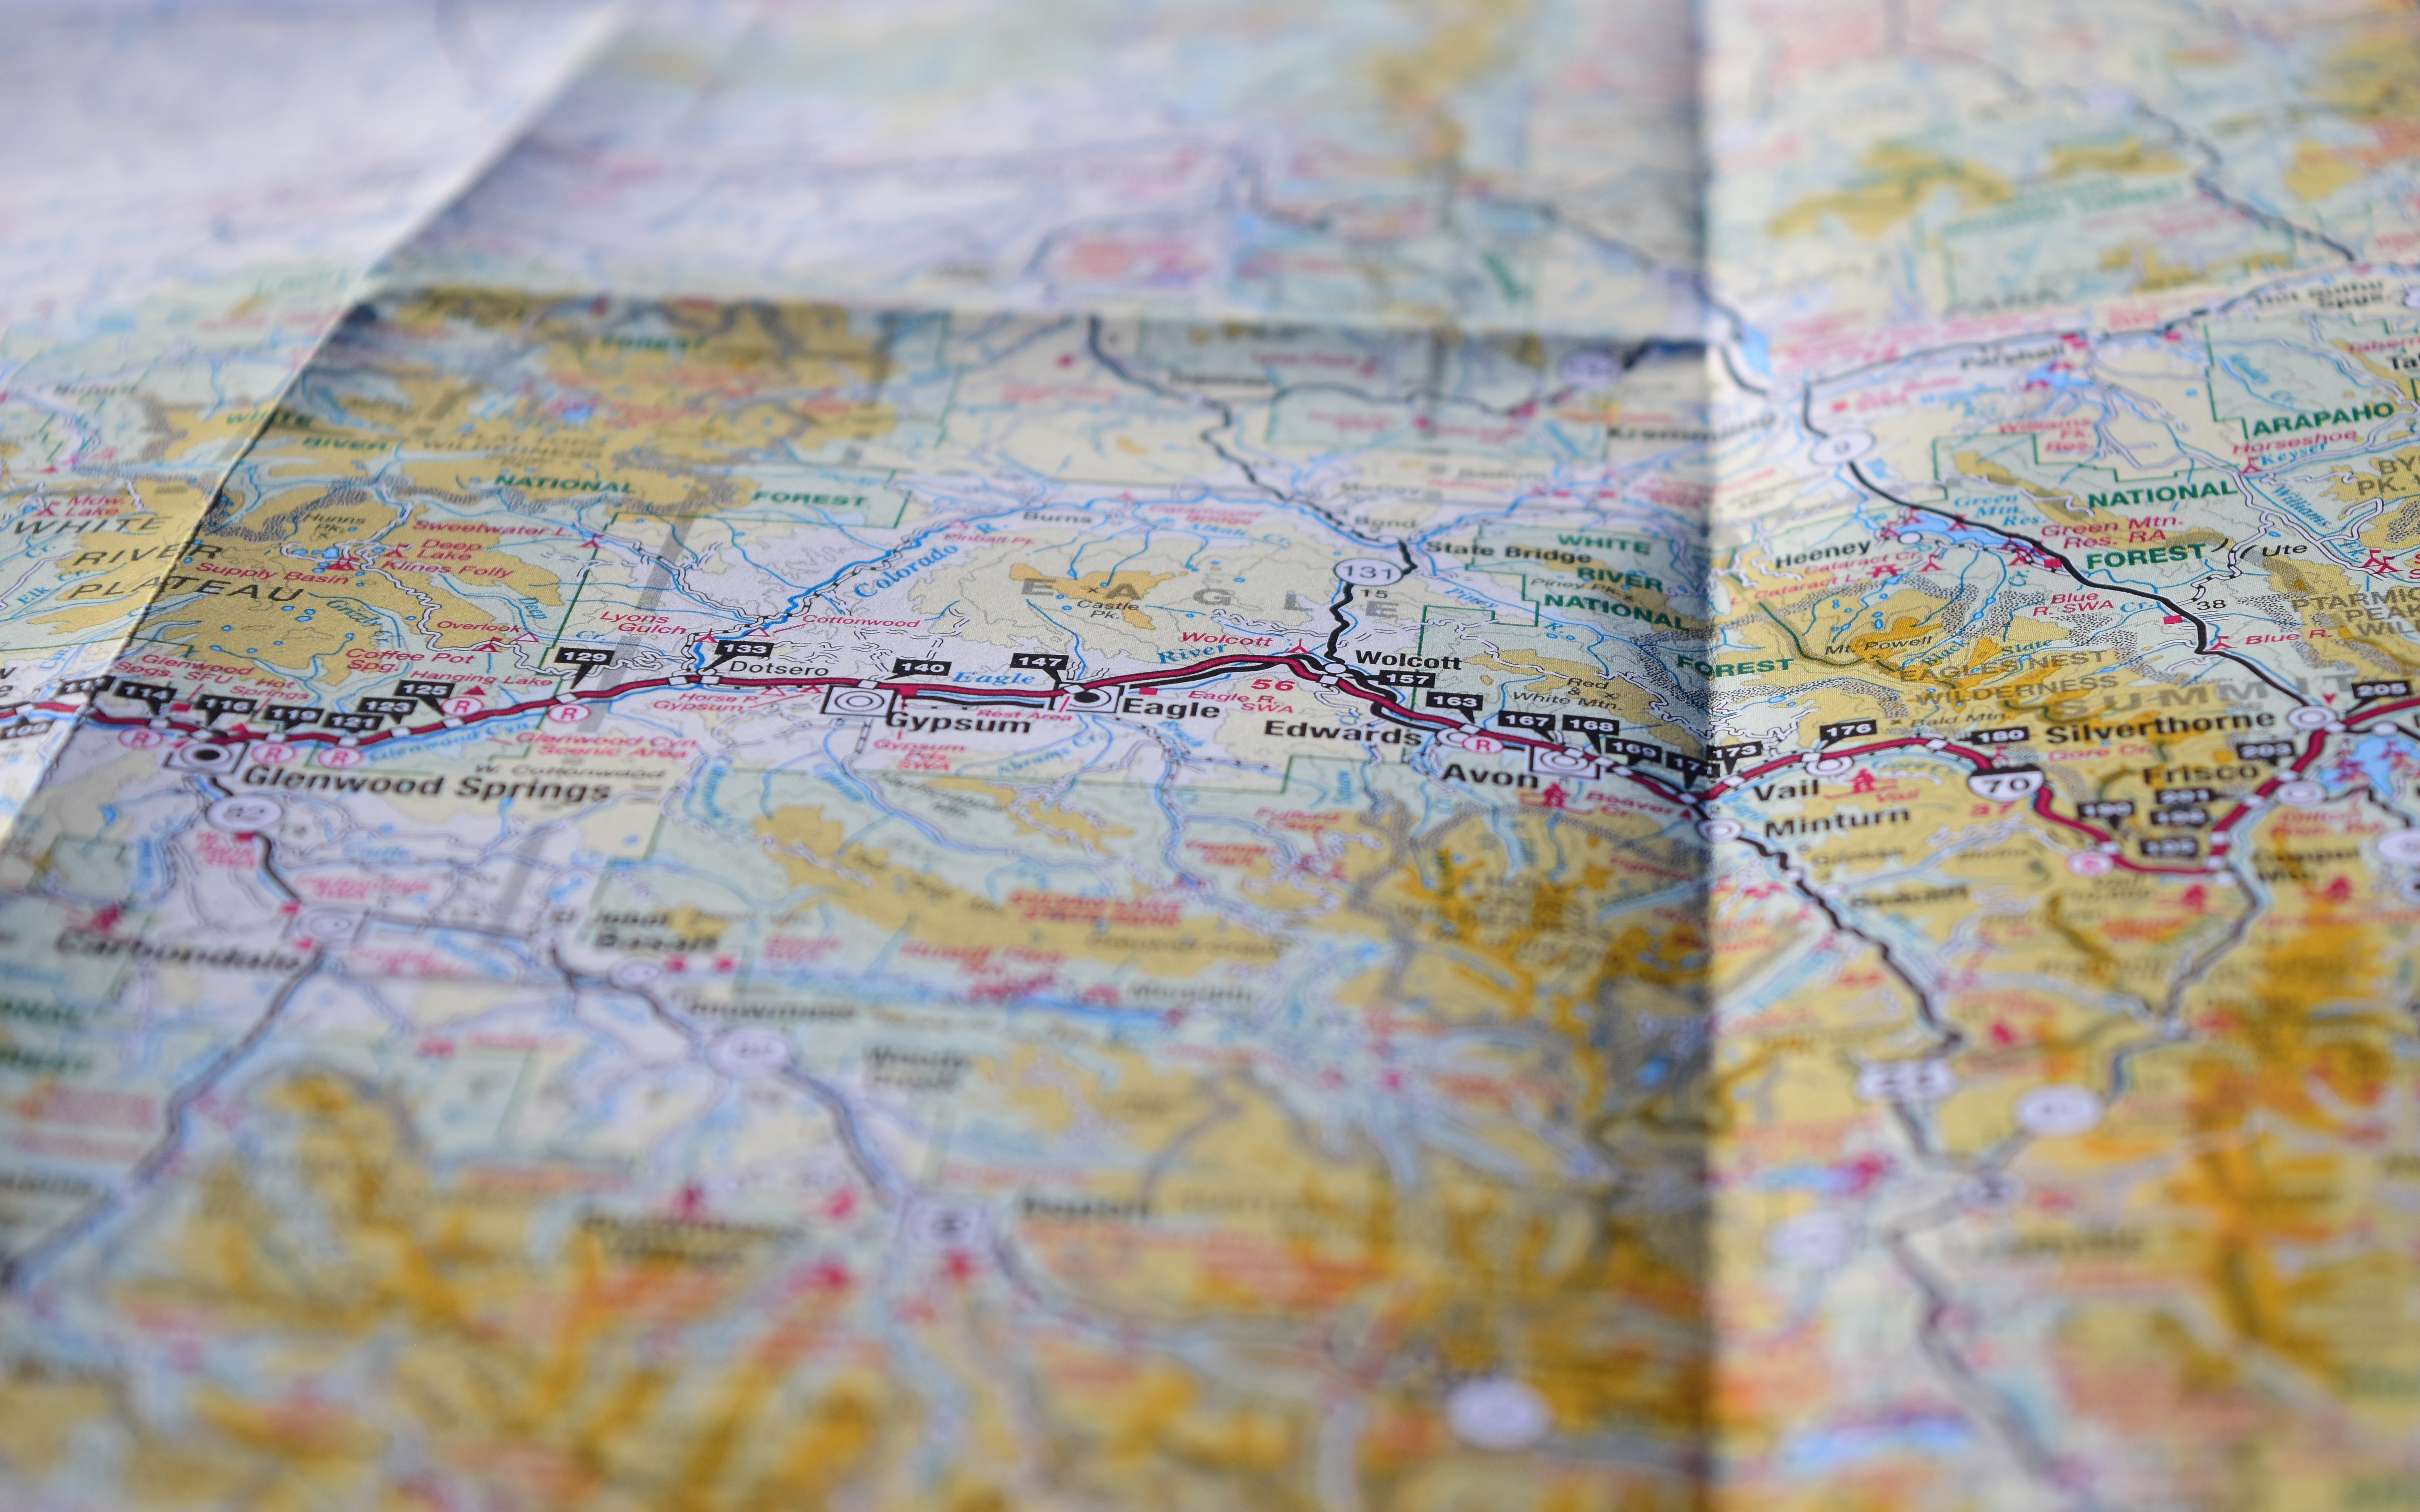 How to Learn React js, Part 2: The React Road Map for Modern